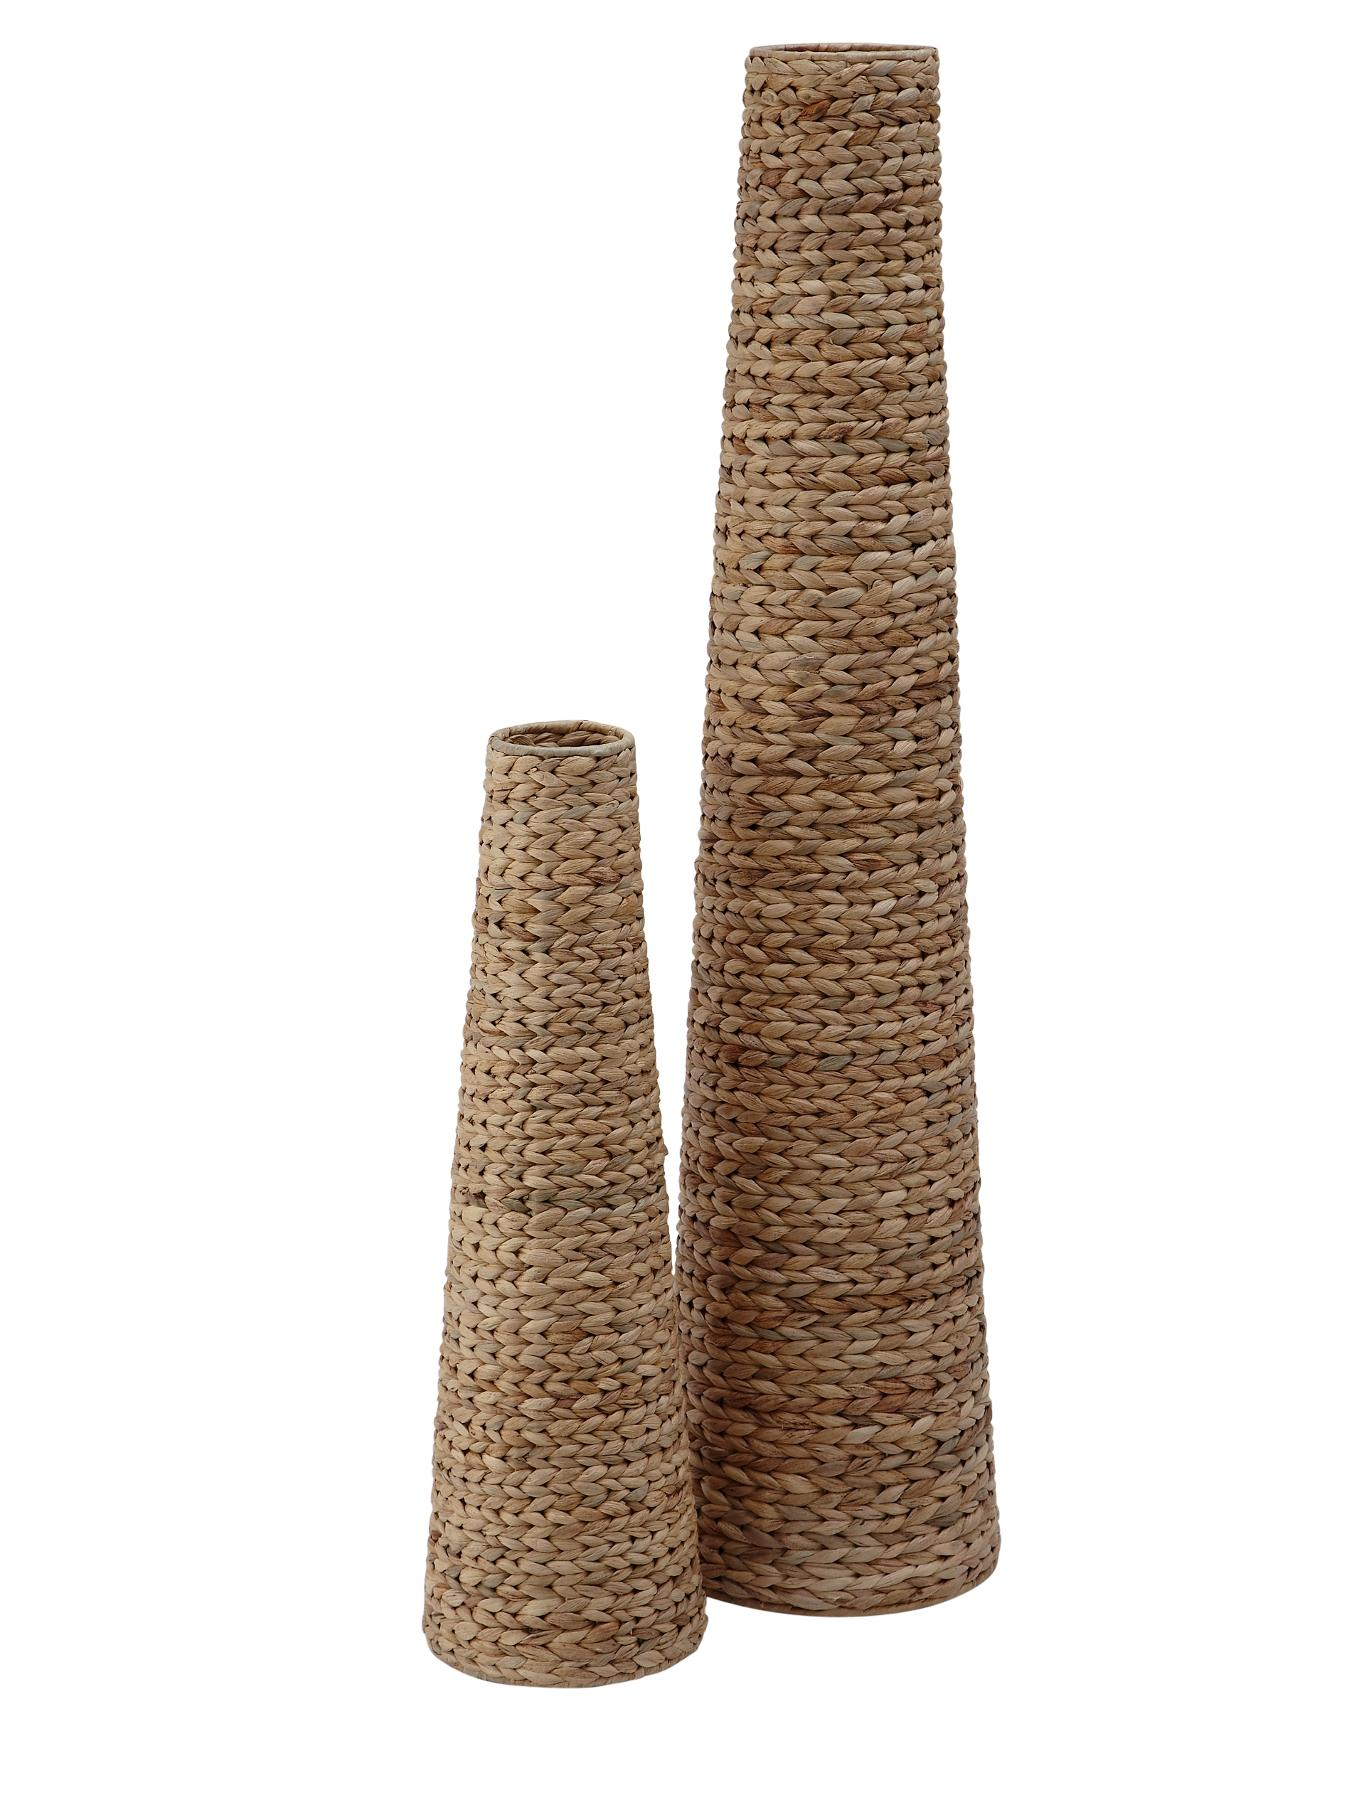 Arrow Weave Large Vases (2 Pack)